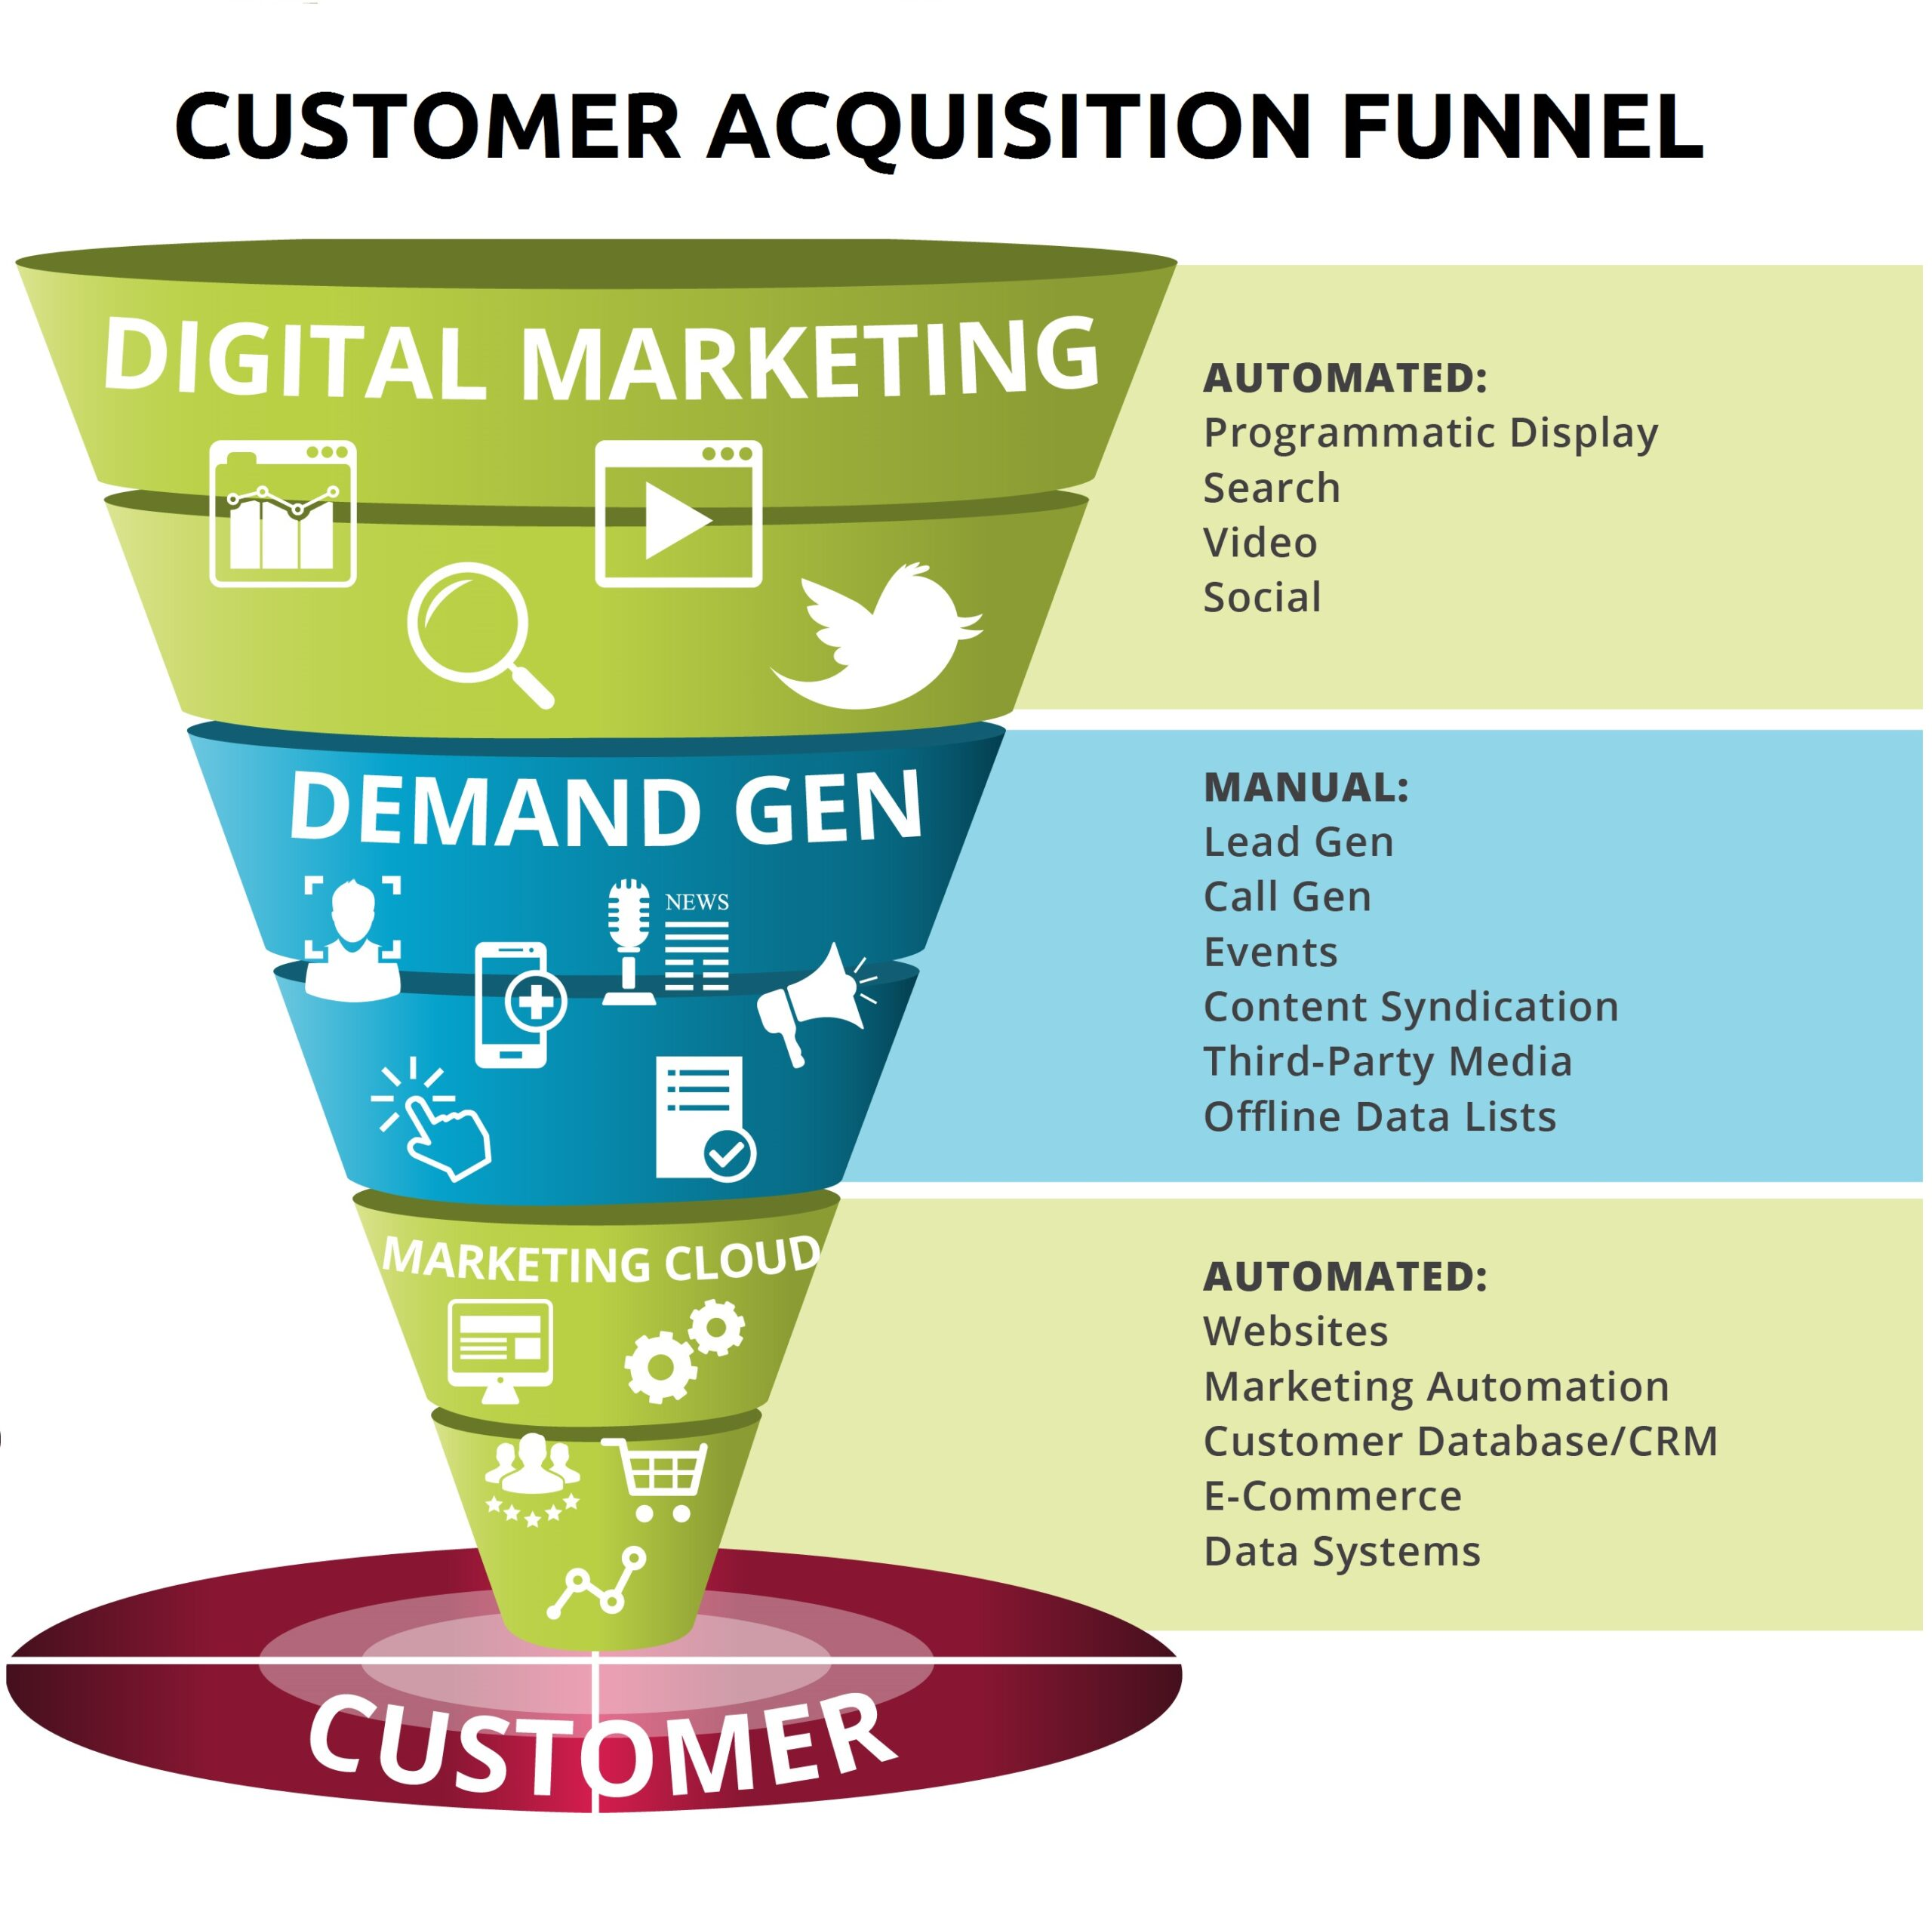 omni-channel campaigns, Digital Marketing,demand generation/